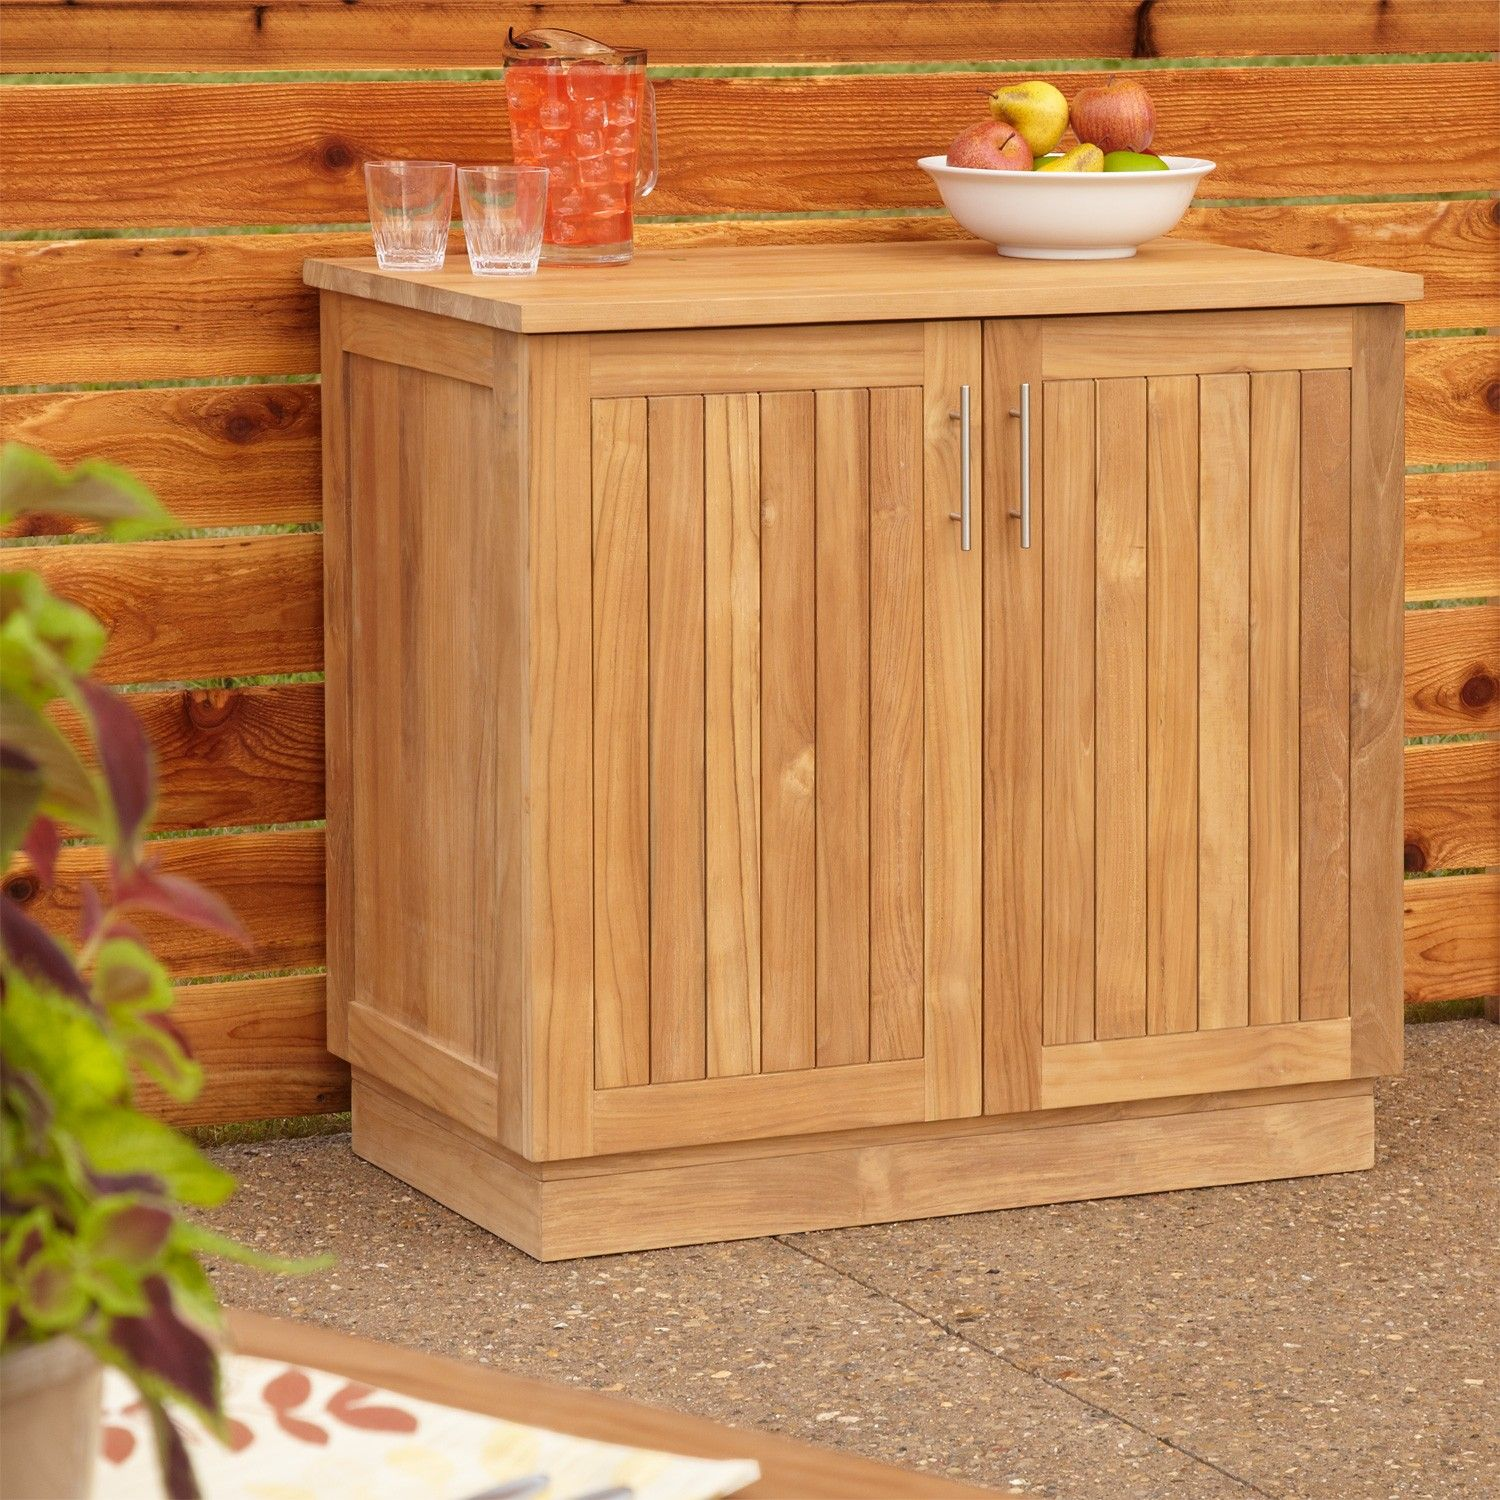 "36"" Artois Teak Outdoor Kitchen Outdoor"